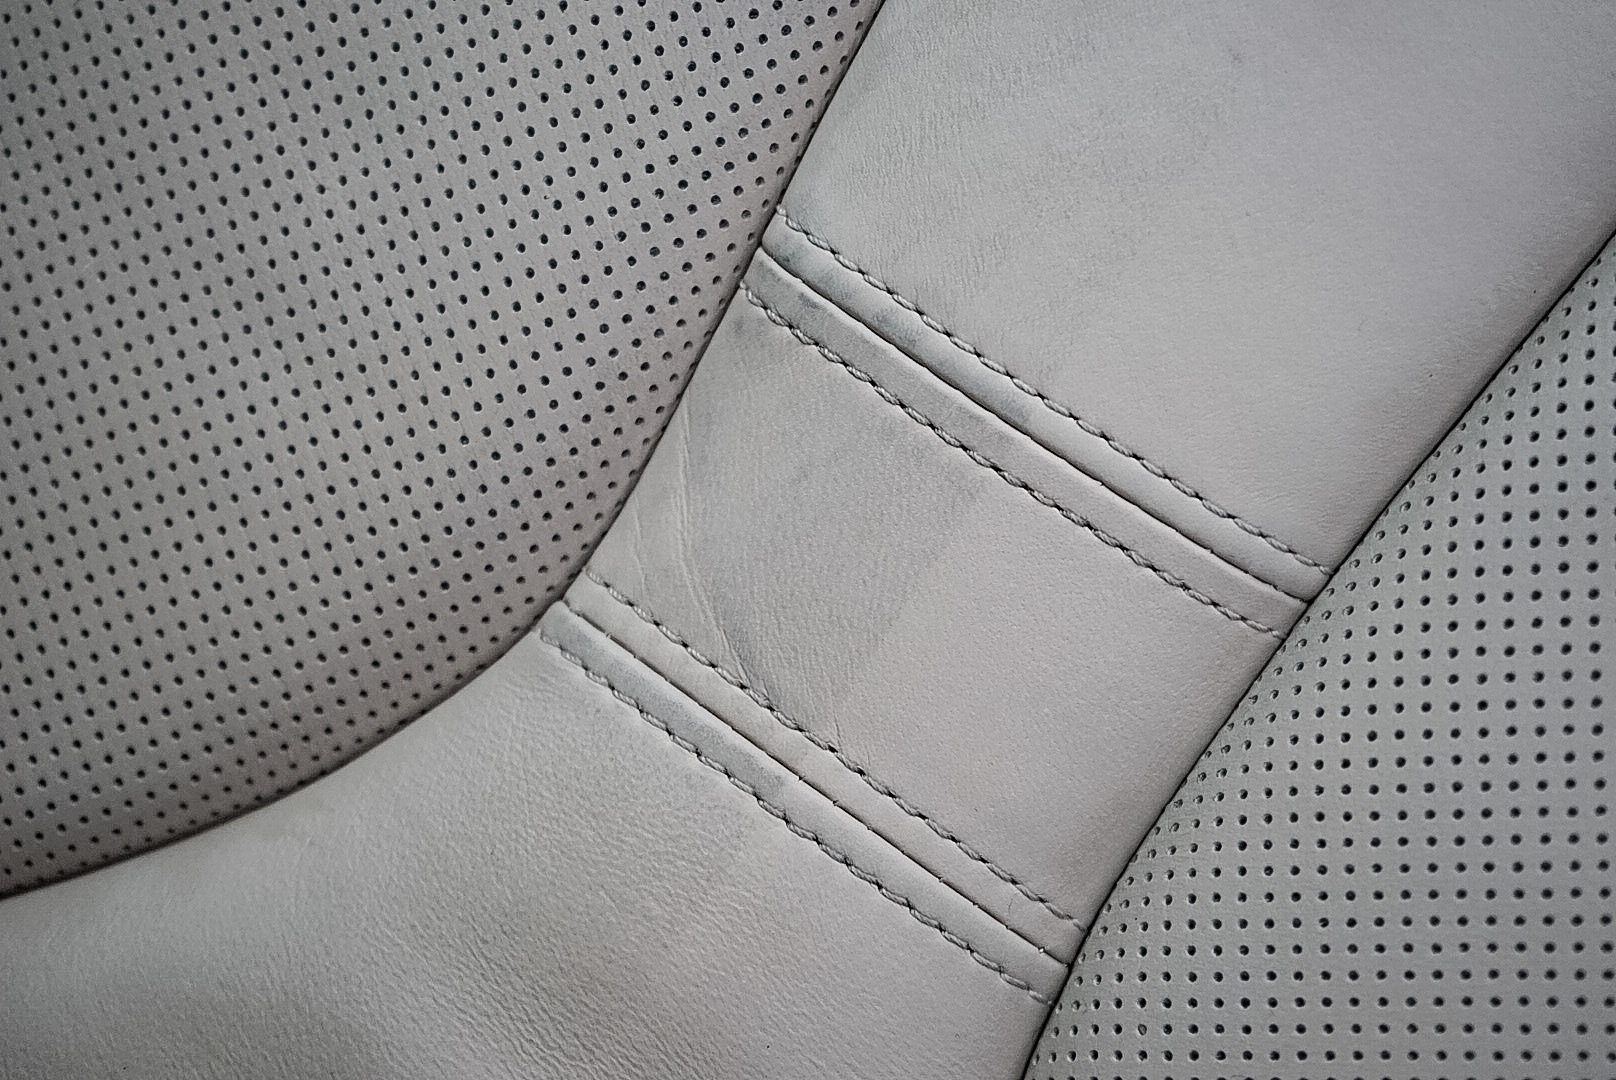 50/50 Shot of the drivers seat from a 1 Week old BMW. The left shows the dye transfer and staining after one weeks use. This car has received dealer protection and allegedly has leather guard applied. The right is after a very light clean using Leather cleaner showing the natural colour of the leather and that the dealership applied protection (Gaurd X) Is not offering protection against die transfer and soiling. Proof that dealership protection is not offering as marketed.